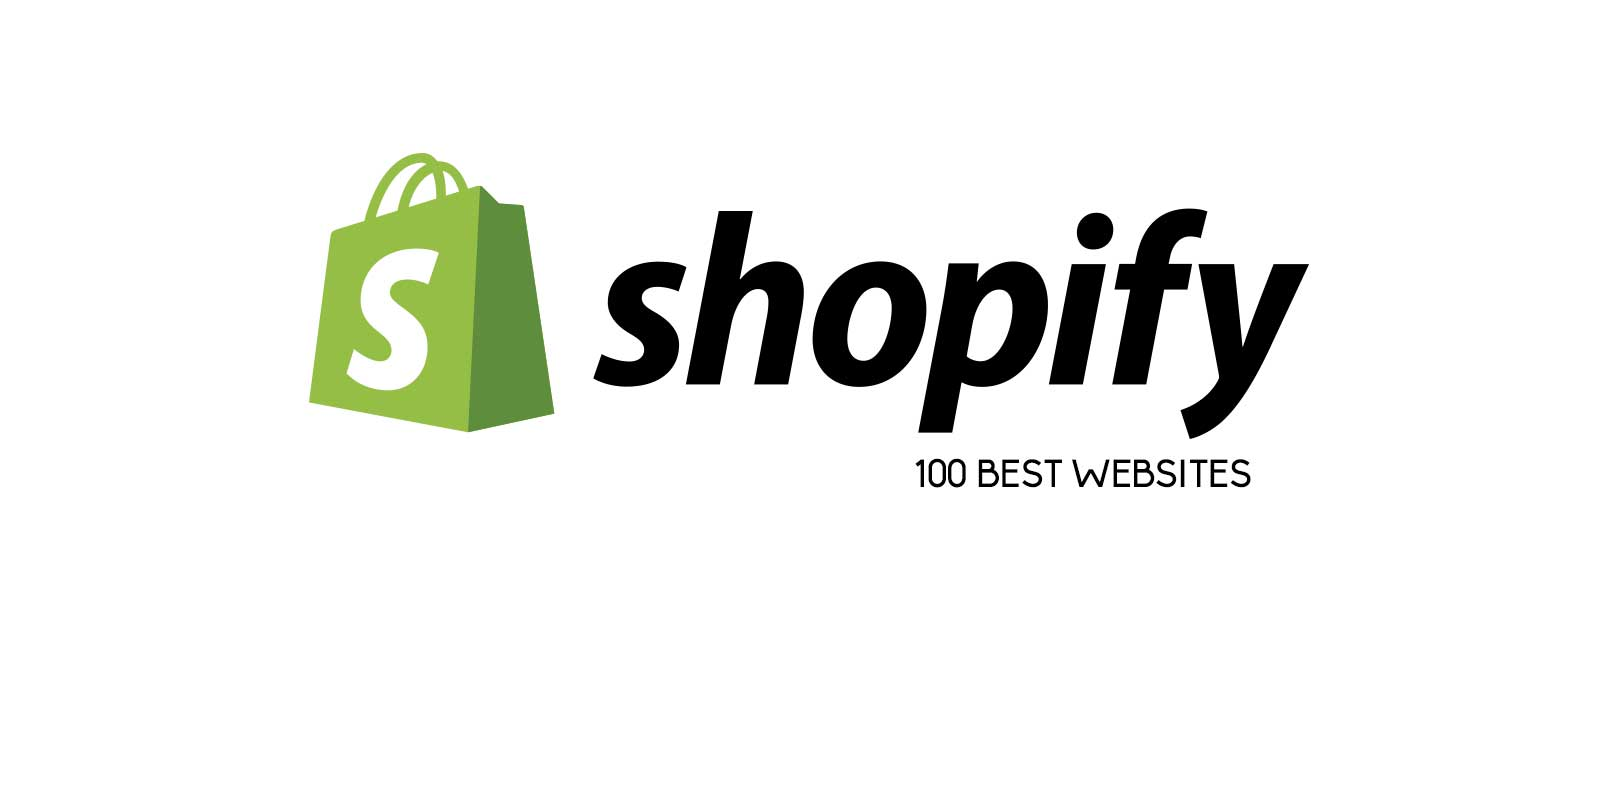 Shopify Ranks Slyde Handboards in Top 100 Most Beautiful & Creative Ecommerce Websites For Sports & Fitness